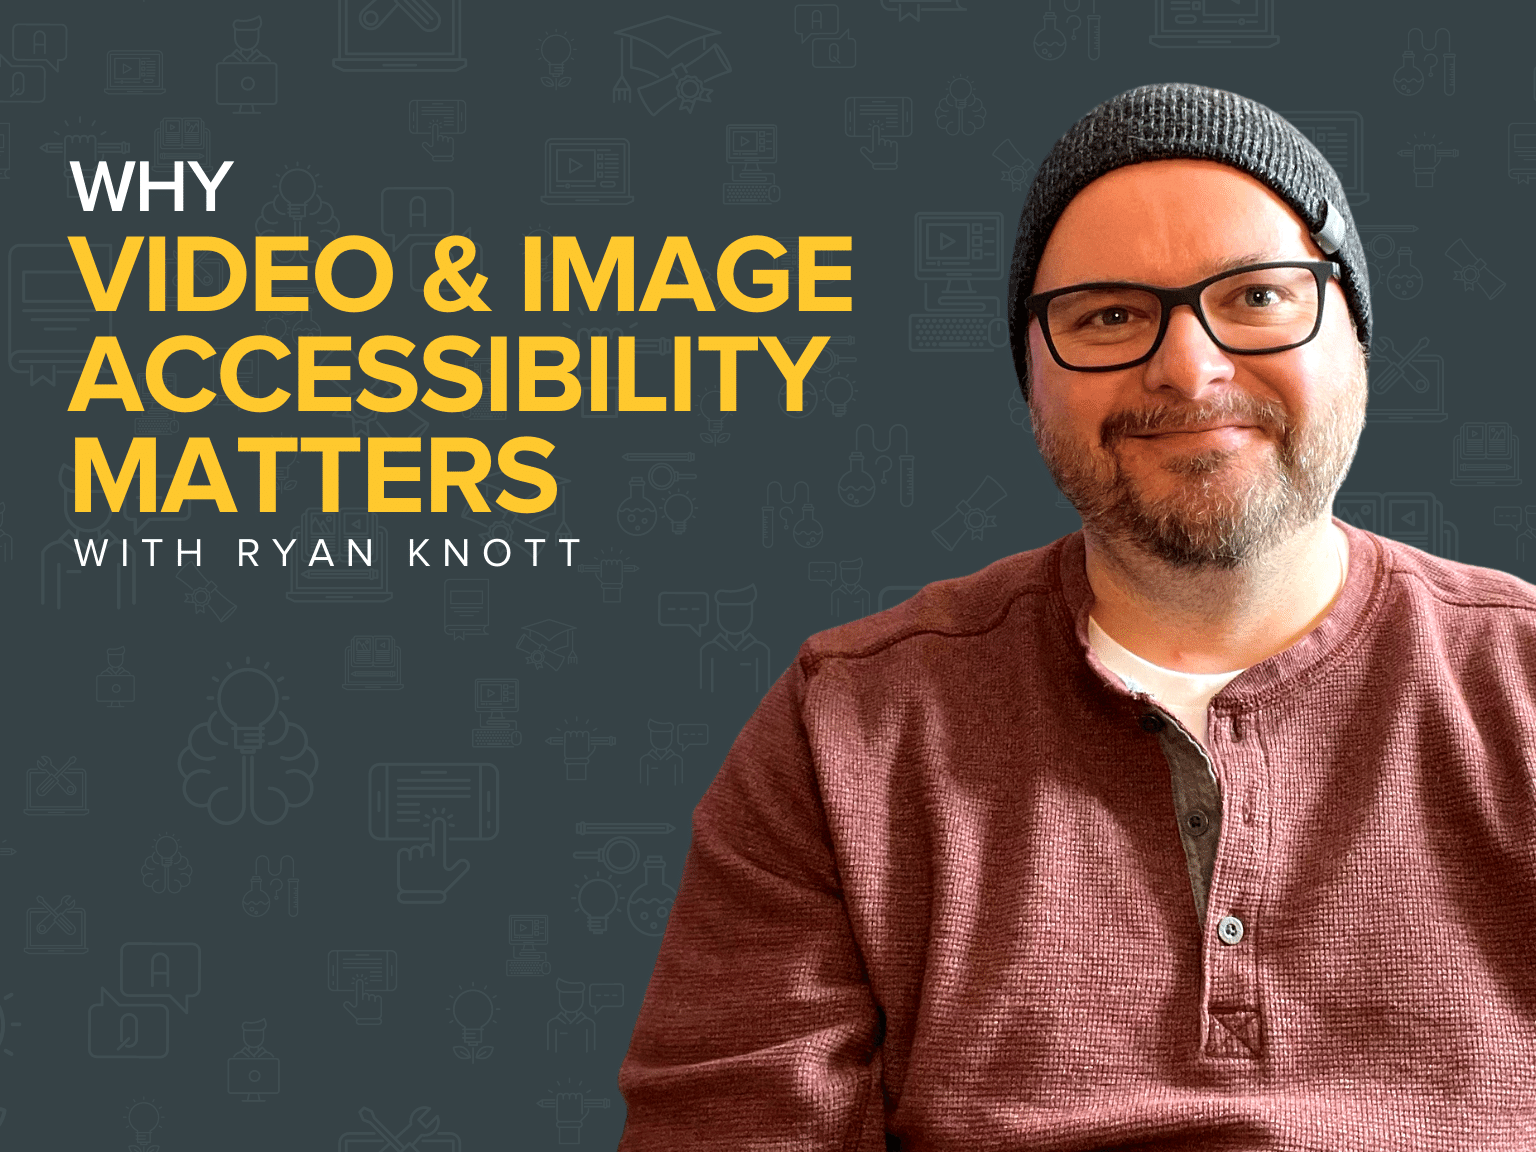 Blog Title: Why Video & Image Accessibility Matters with Ryan Knott